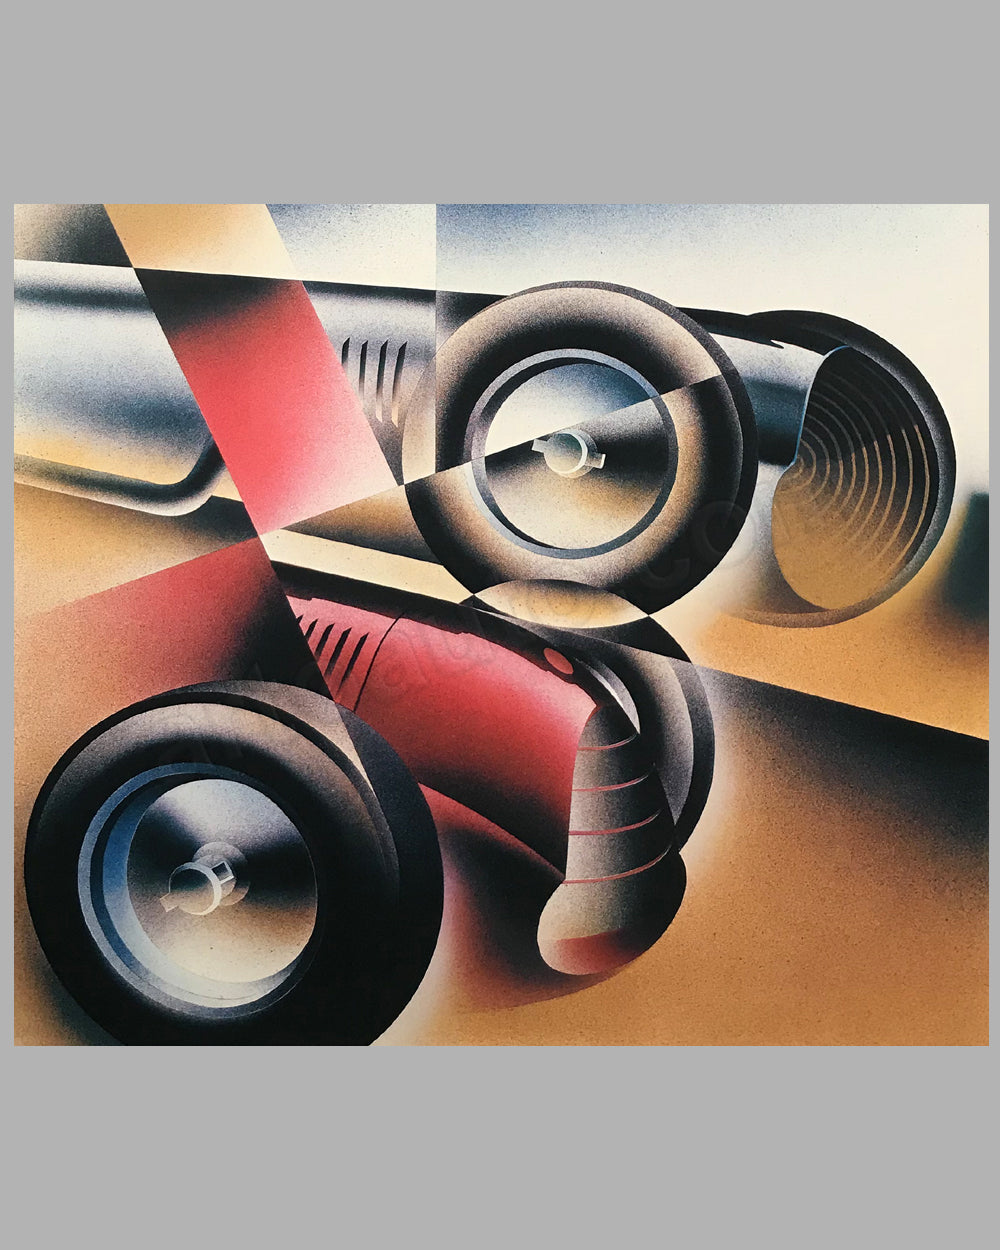 Mercedes vs. Alfa serigraph by Alain Lévesque